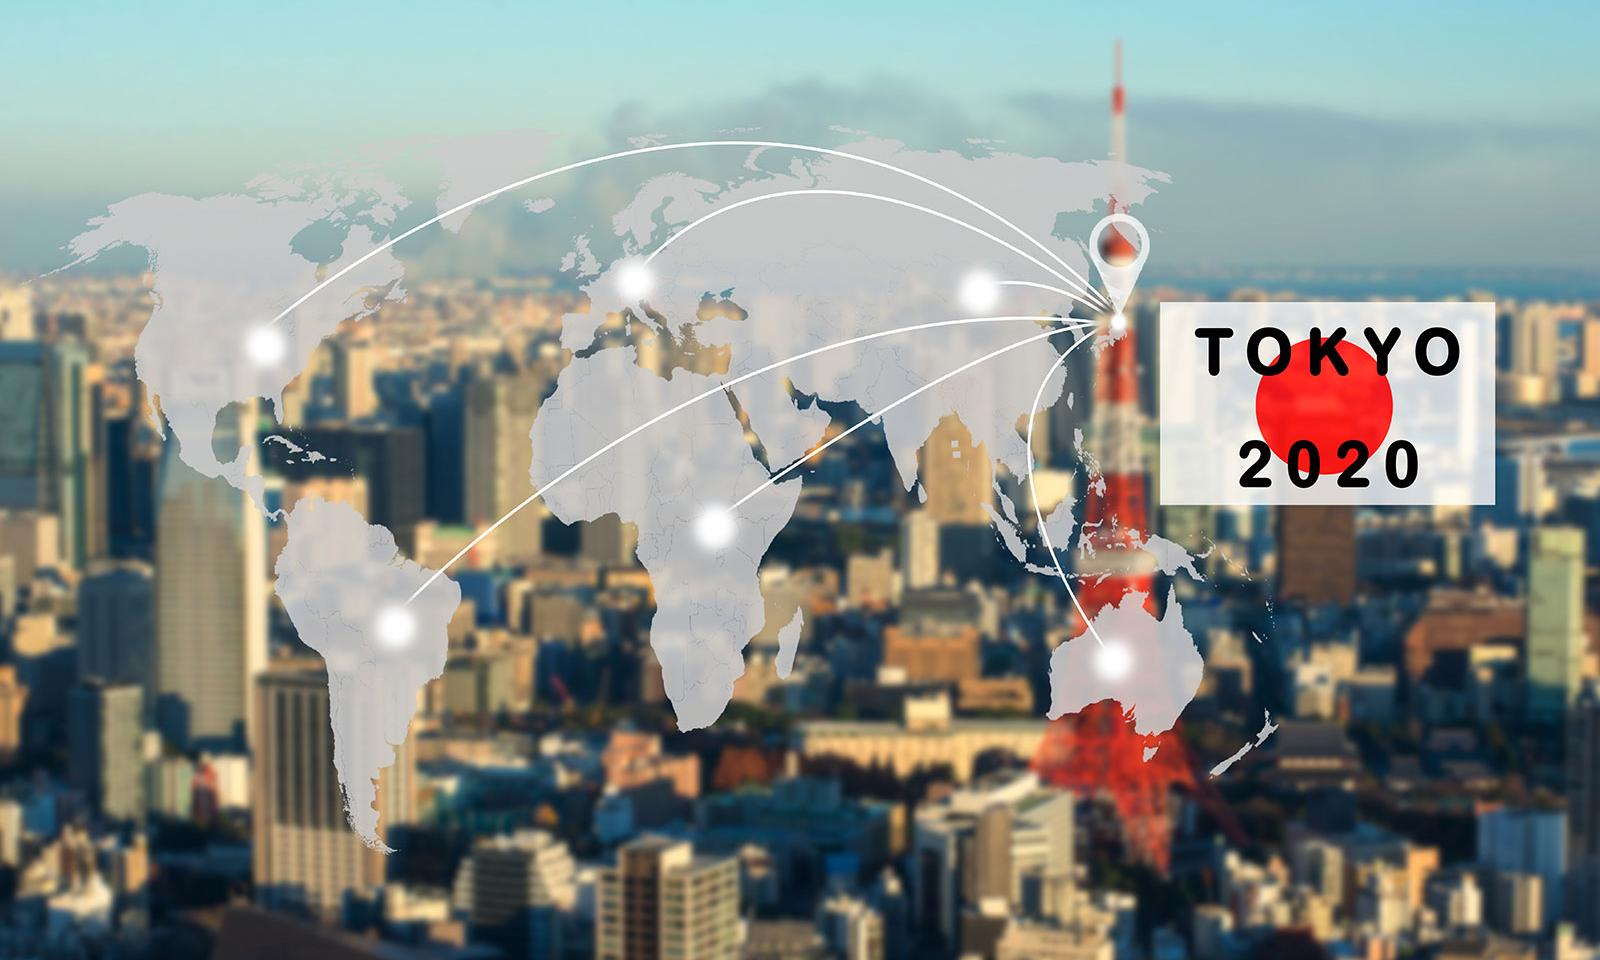 2020 Winter Olympics Hotels.The Tokyo Olympics 2020 Everything You Need To Know